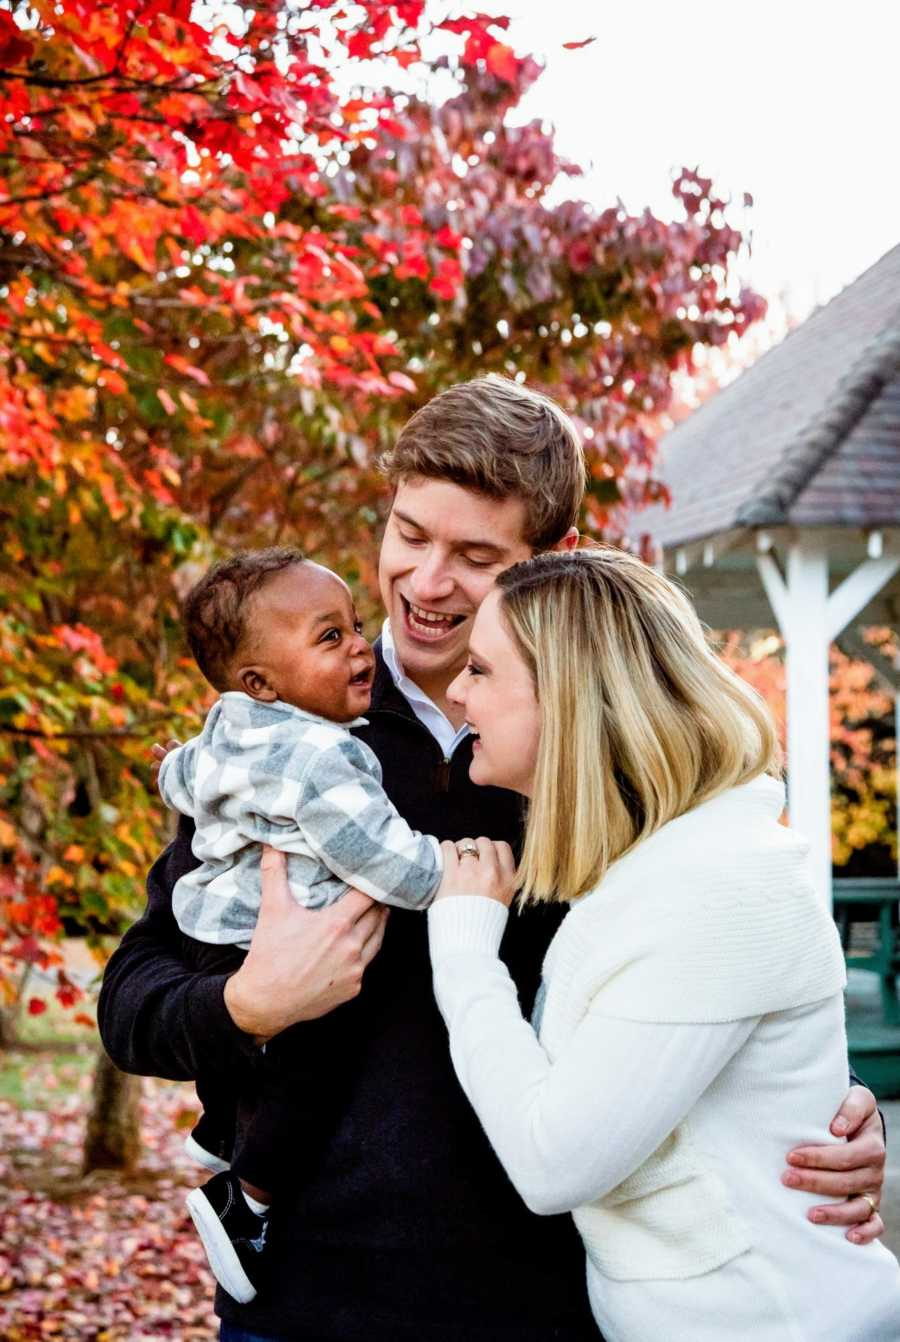 Adoptive parents and their son together in the fall